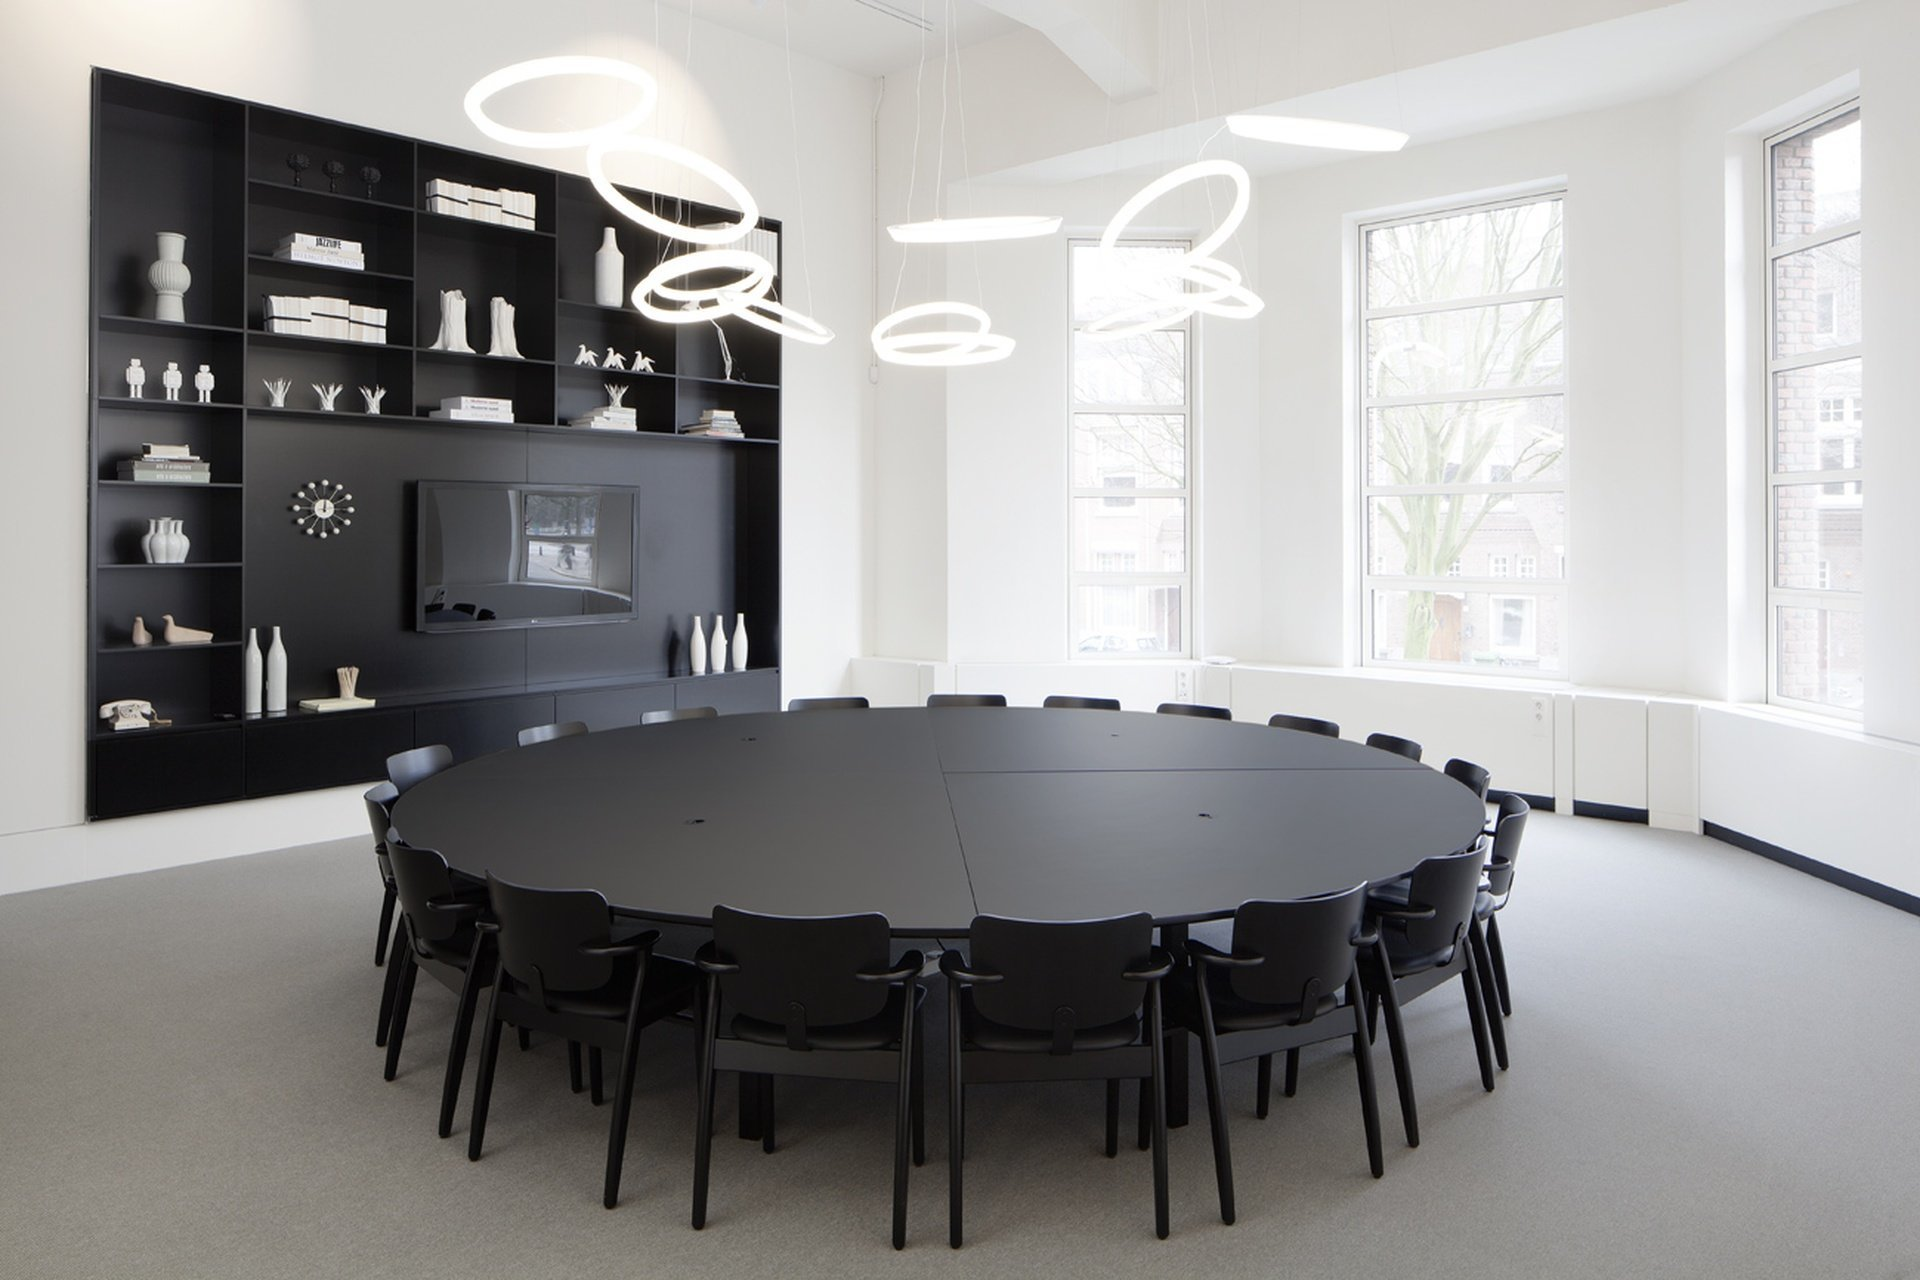 The Hague Train station meeting rooms Meeting room Rode Olifant image 0